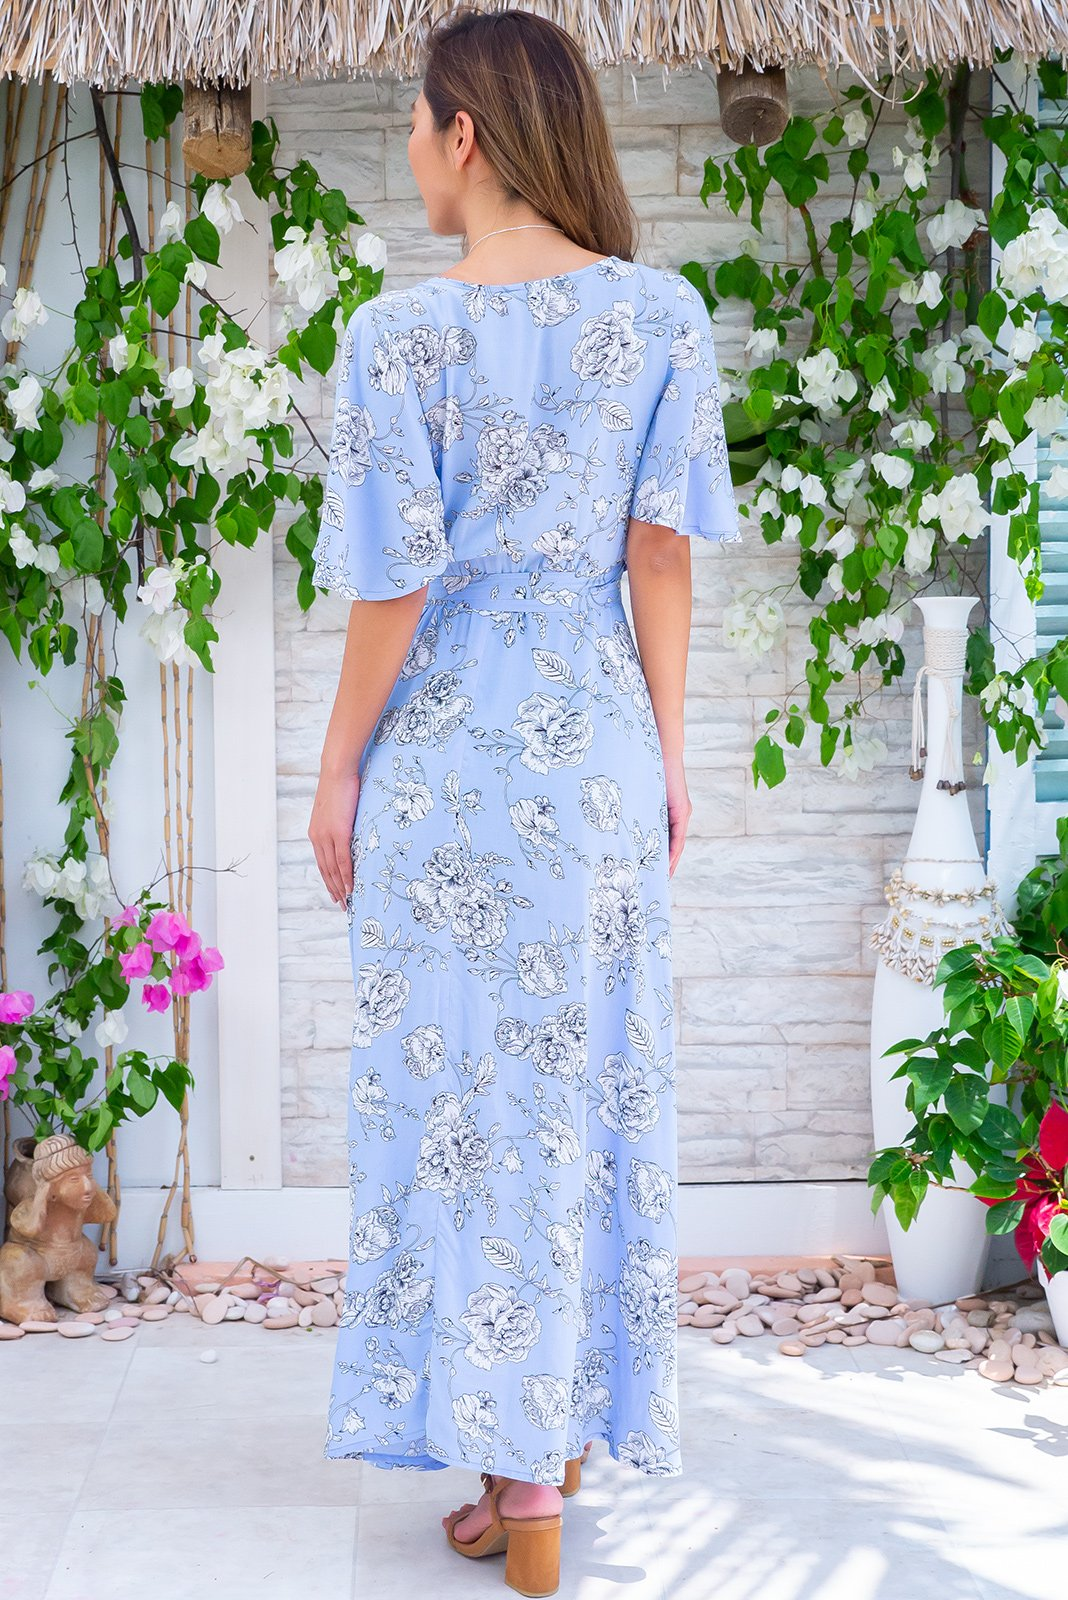 Petal Arctic Garden Maxi Wrap Dress is a stunning retro style featuring adjustable wrap design, flutter sleeves, elasticated waist band at the back, soft, powder blue fabric with a large white floral pattern in woven 100% Rayon.